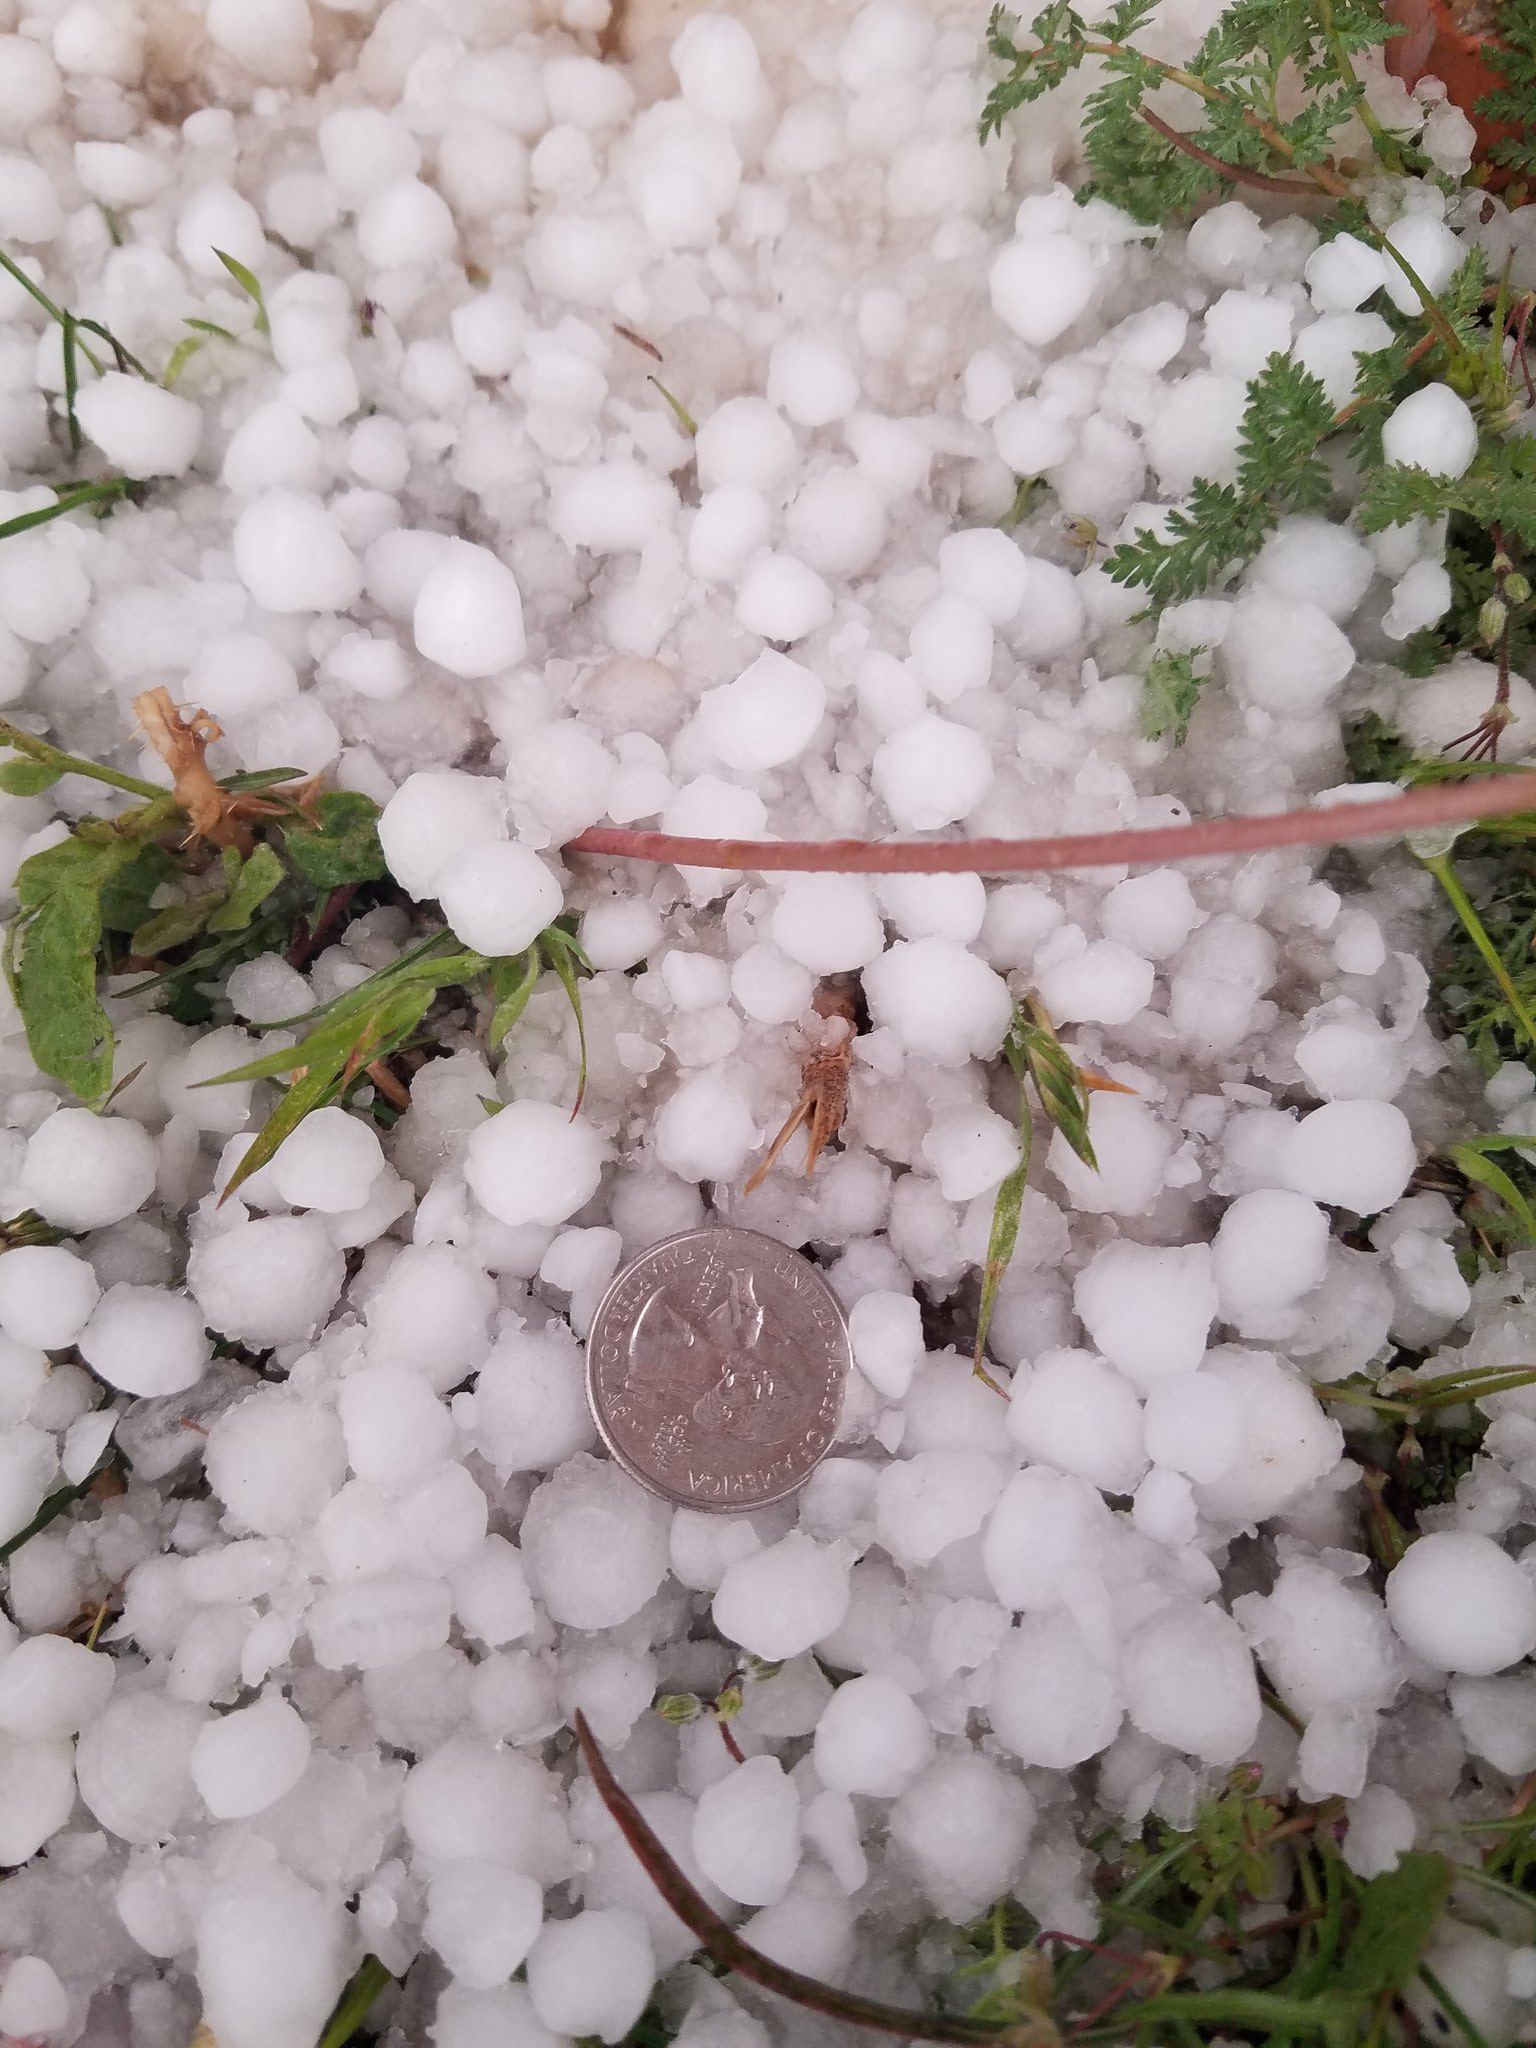 Small hail piled up in northwest Lubbock late Monday afternoon (22 March). The picture is courtesy of Jessie McDonald (@jmeso212).